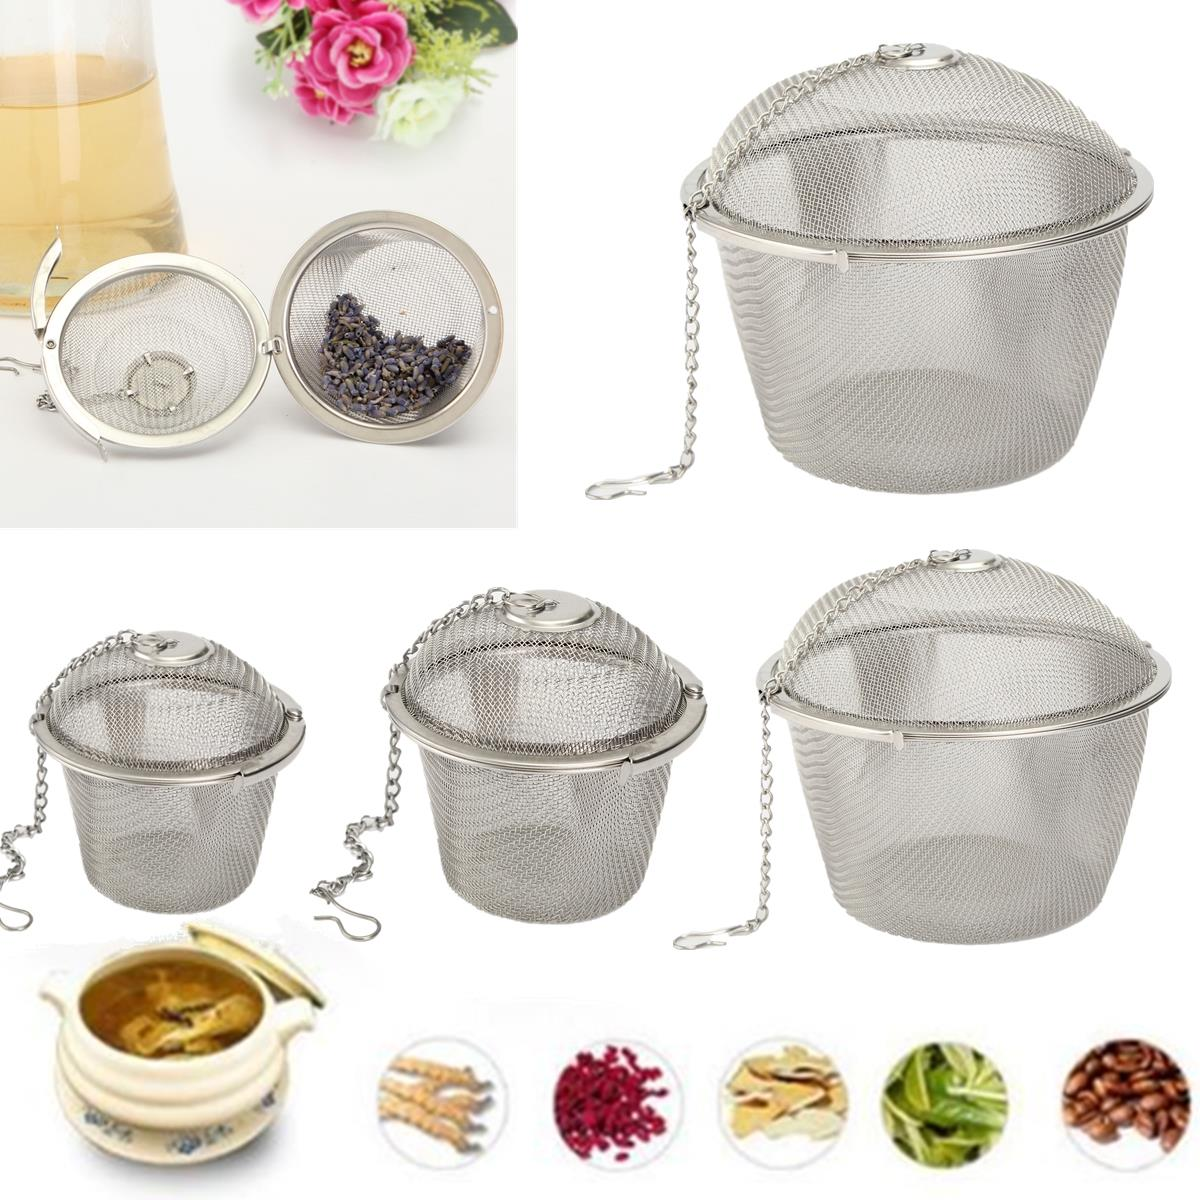 Hot Sale 6.5cm Silver Reusable Stainless Mesh Herbal Ball Tea Spice Strainer Teakettle Locking Tea Filter Infuser Spice M Size(China (Mainland))